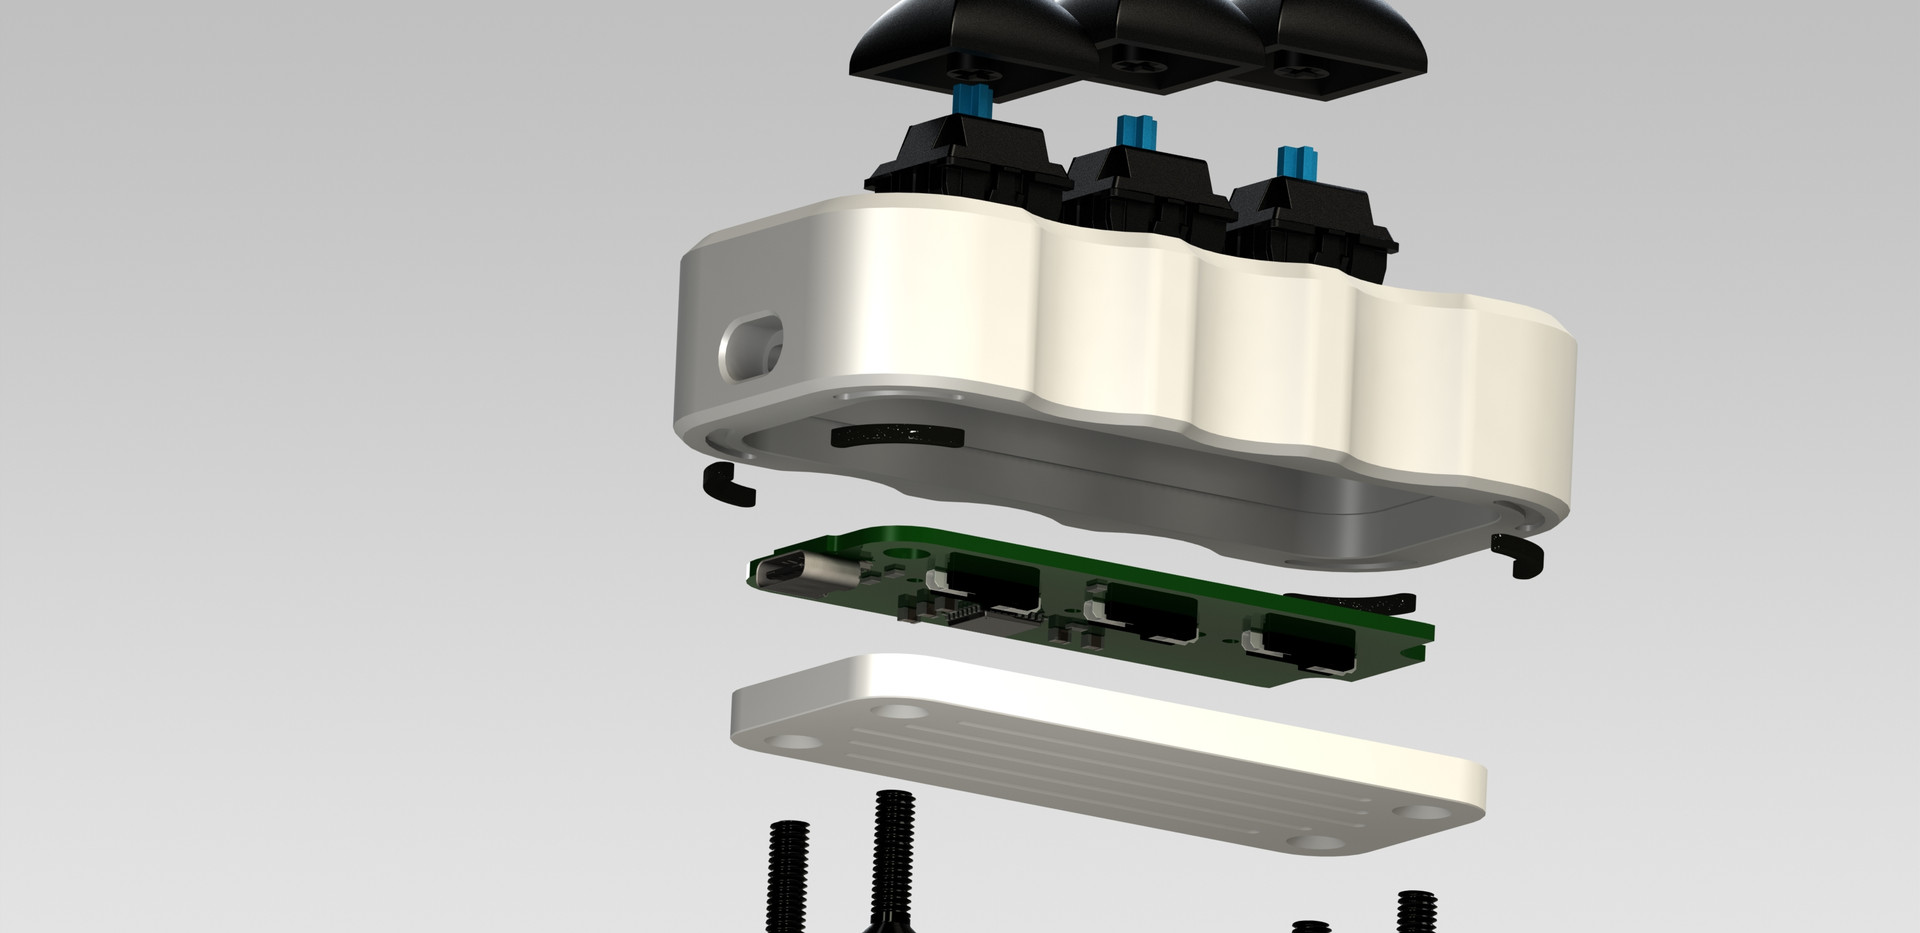 binepad BN003 exploded view